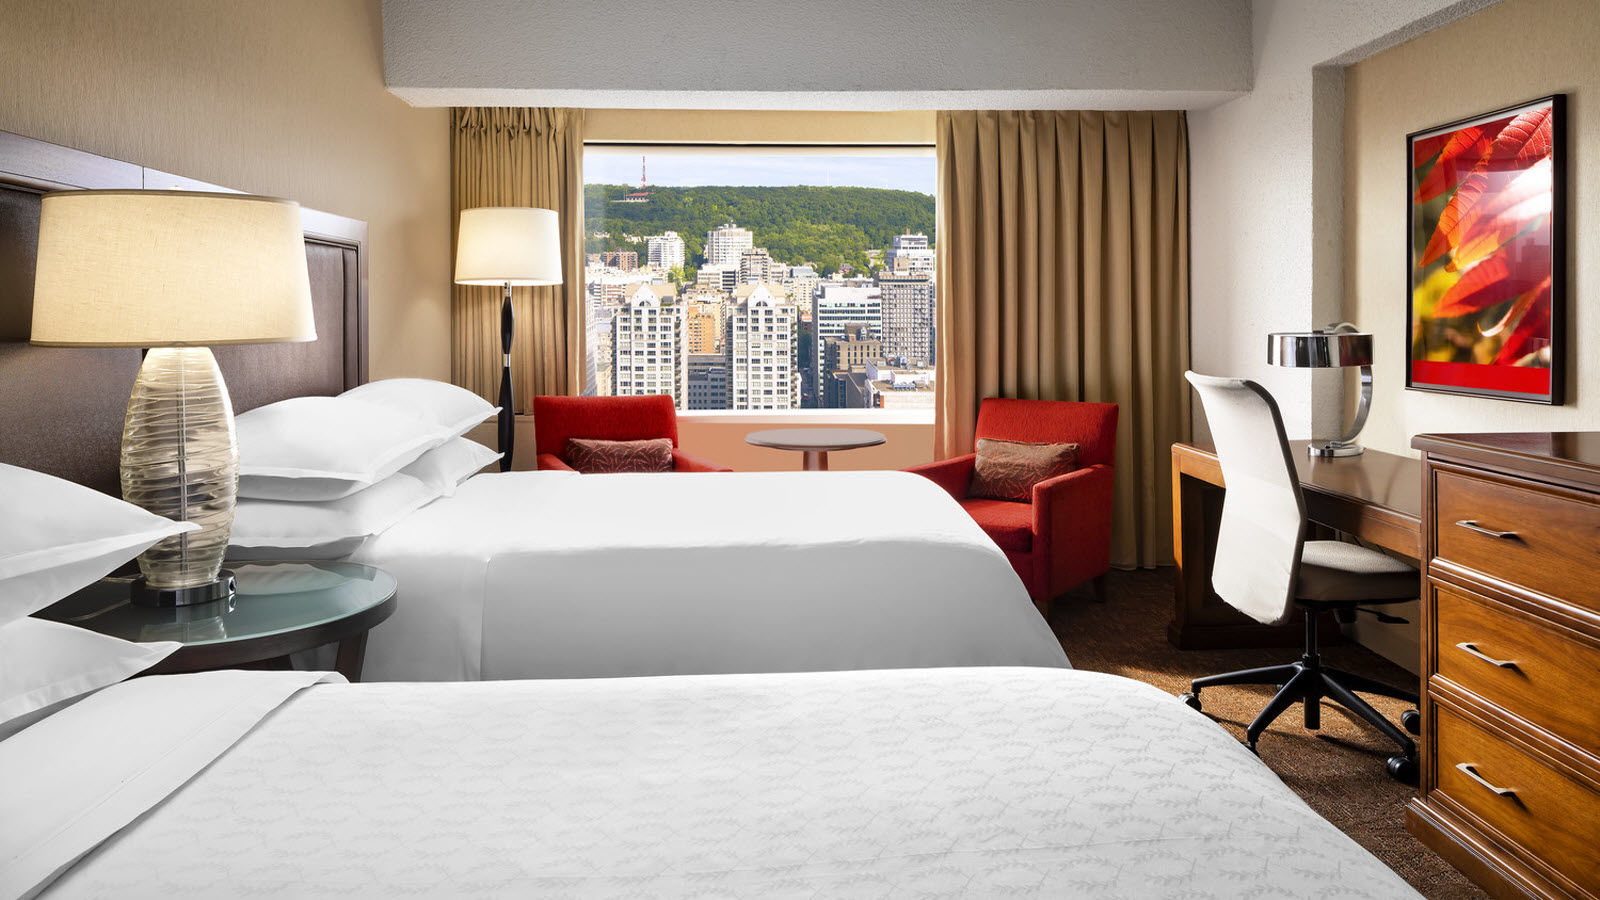 Executive Guest Suite at Le Centre Sheraton Montreal